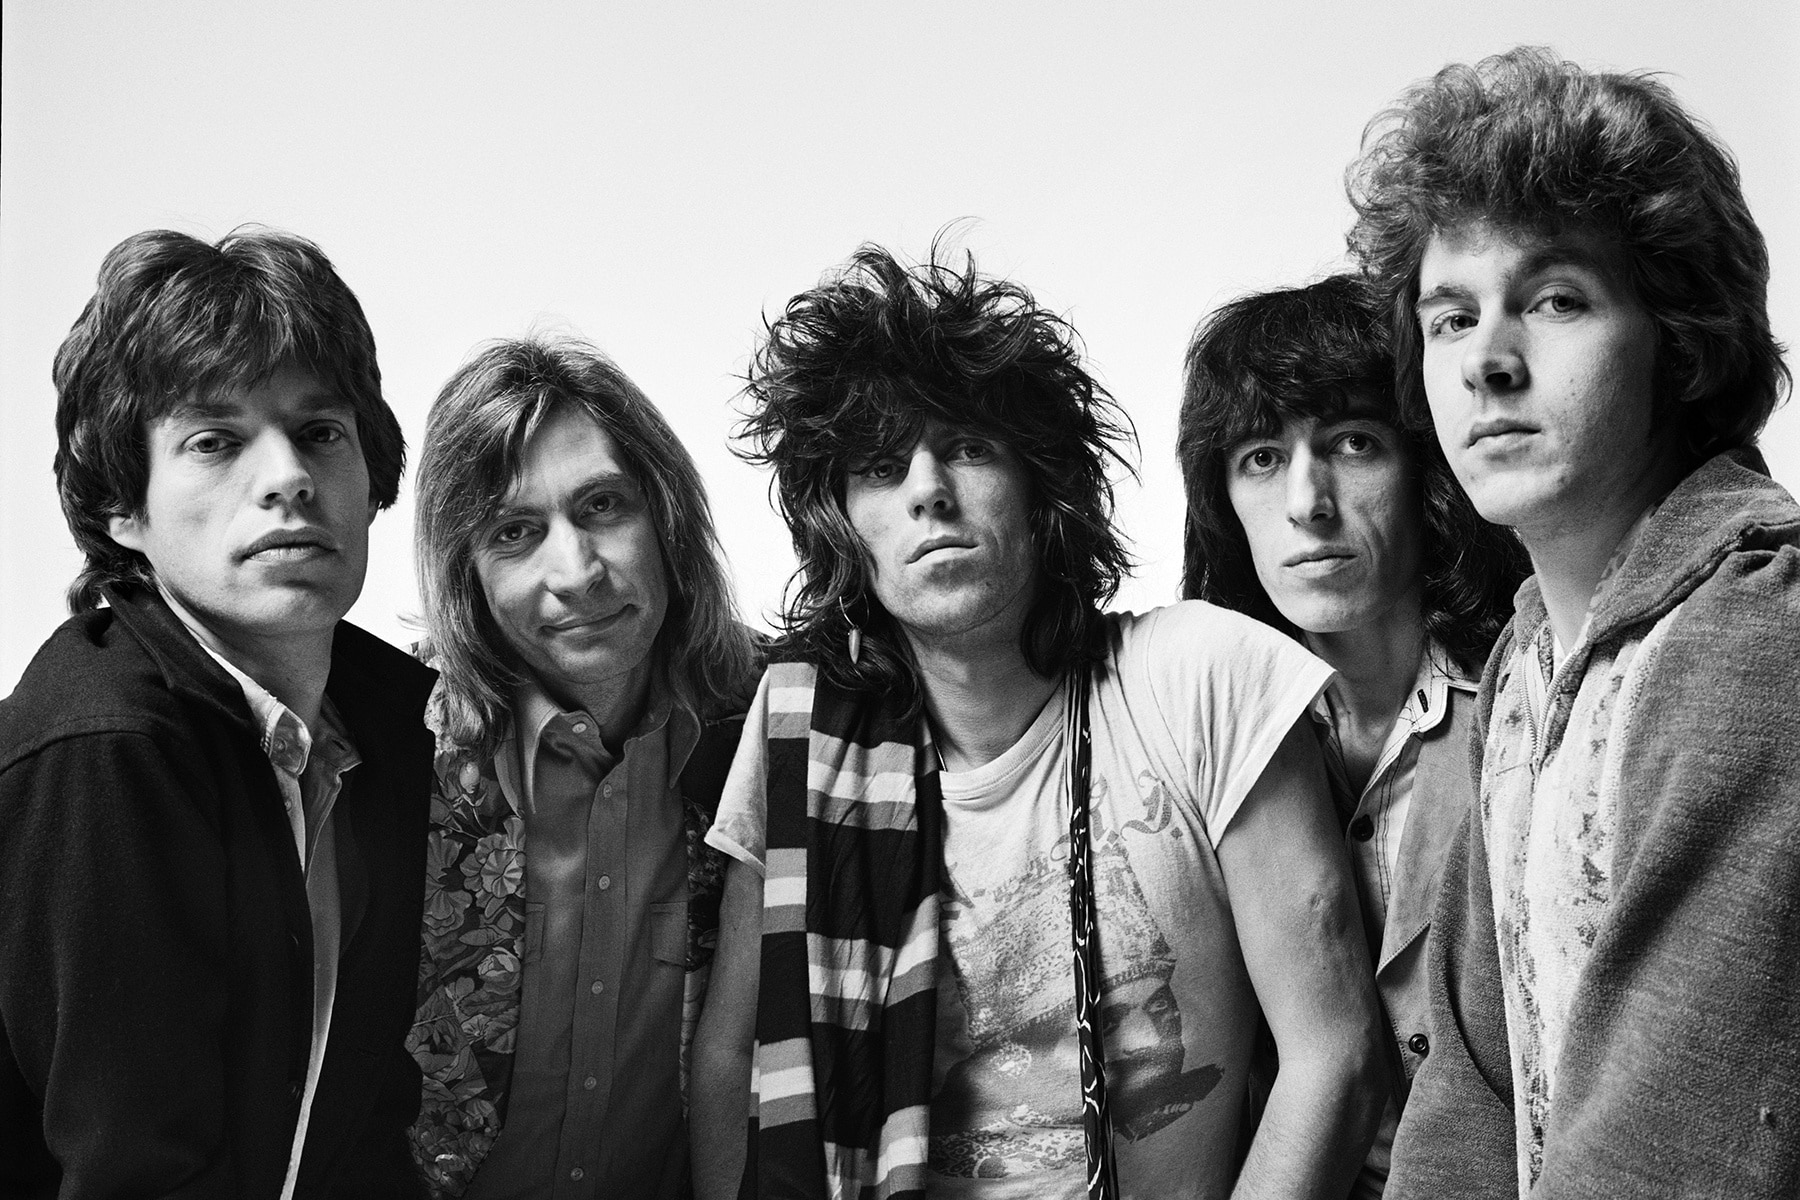 Les Rolling Stones. Source: https://www.rollingstone.com/music/music-features/mick-jagger-keith-richards-goats-head-soup-lockdown-interview-1043673/